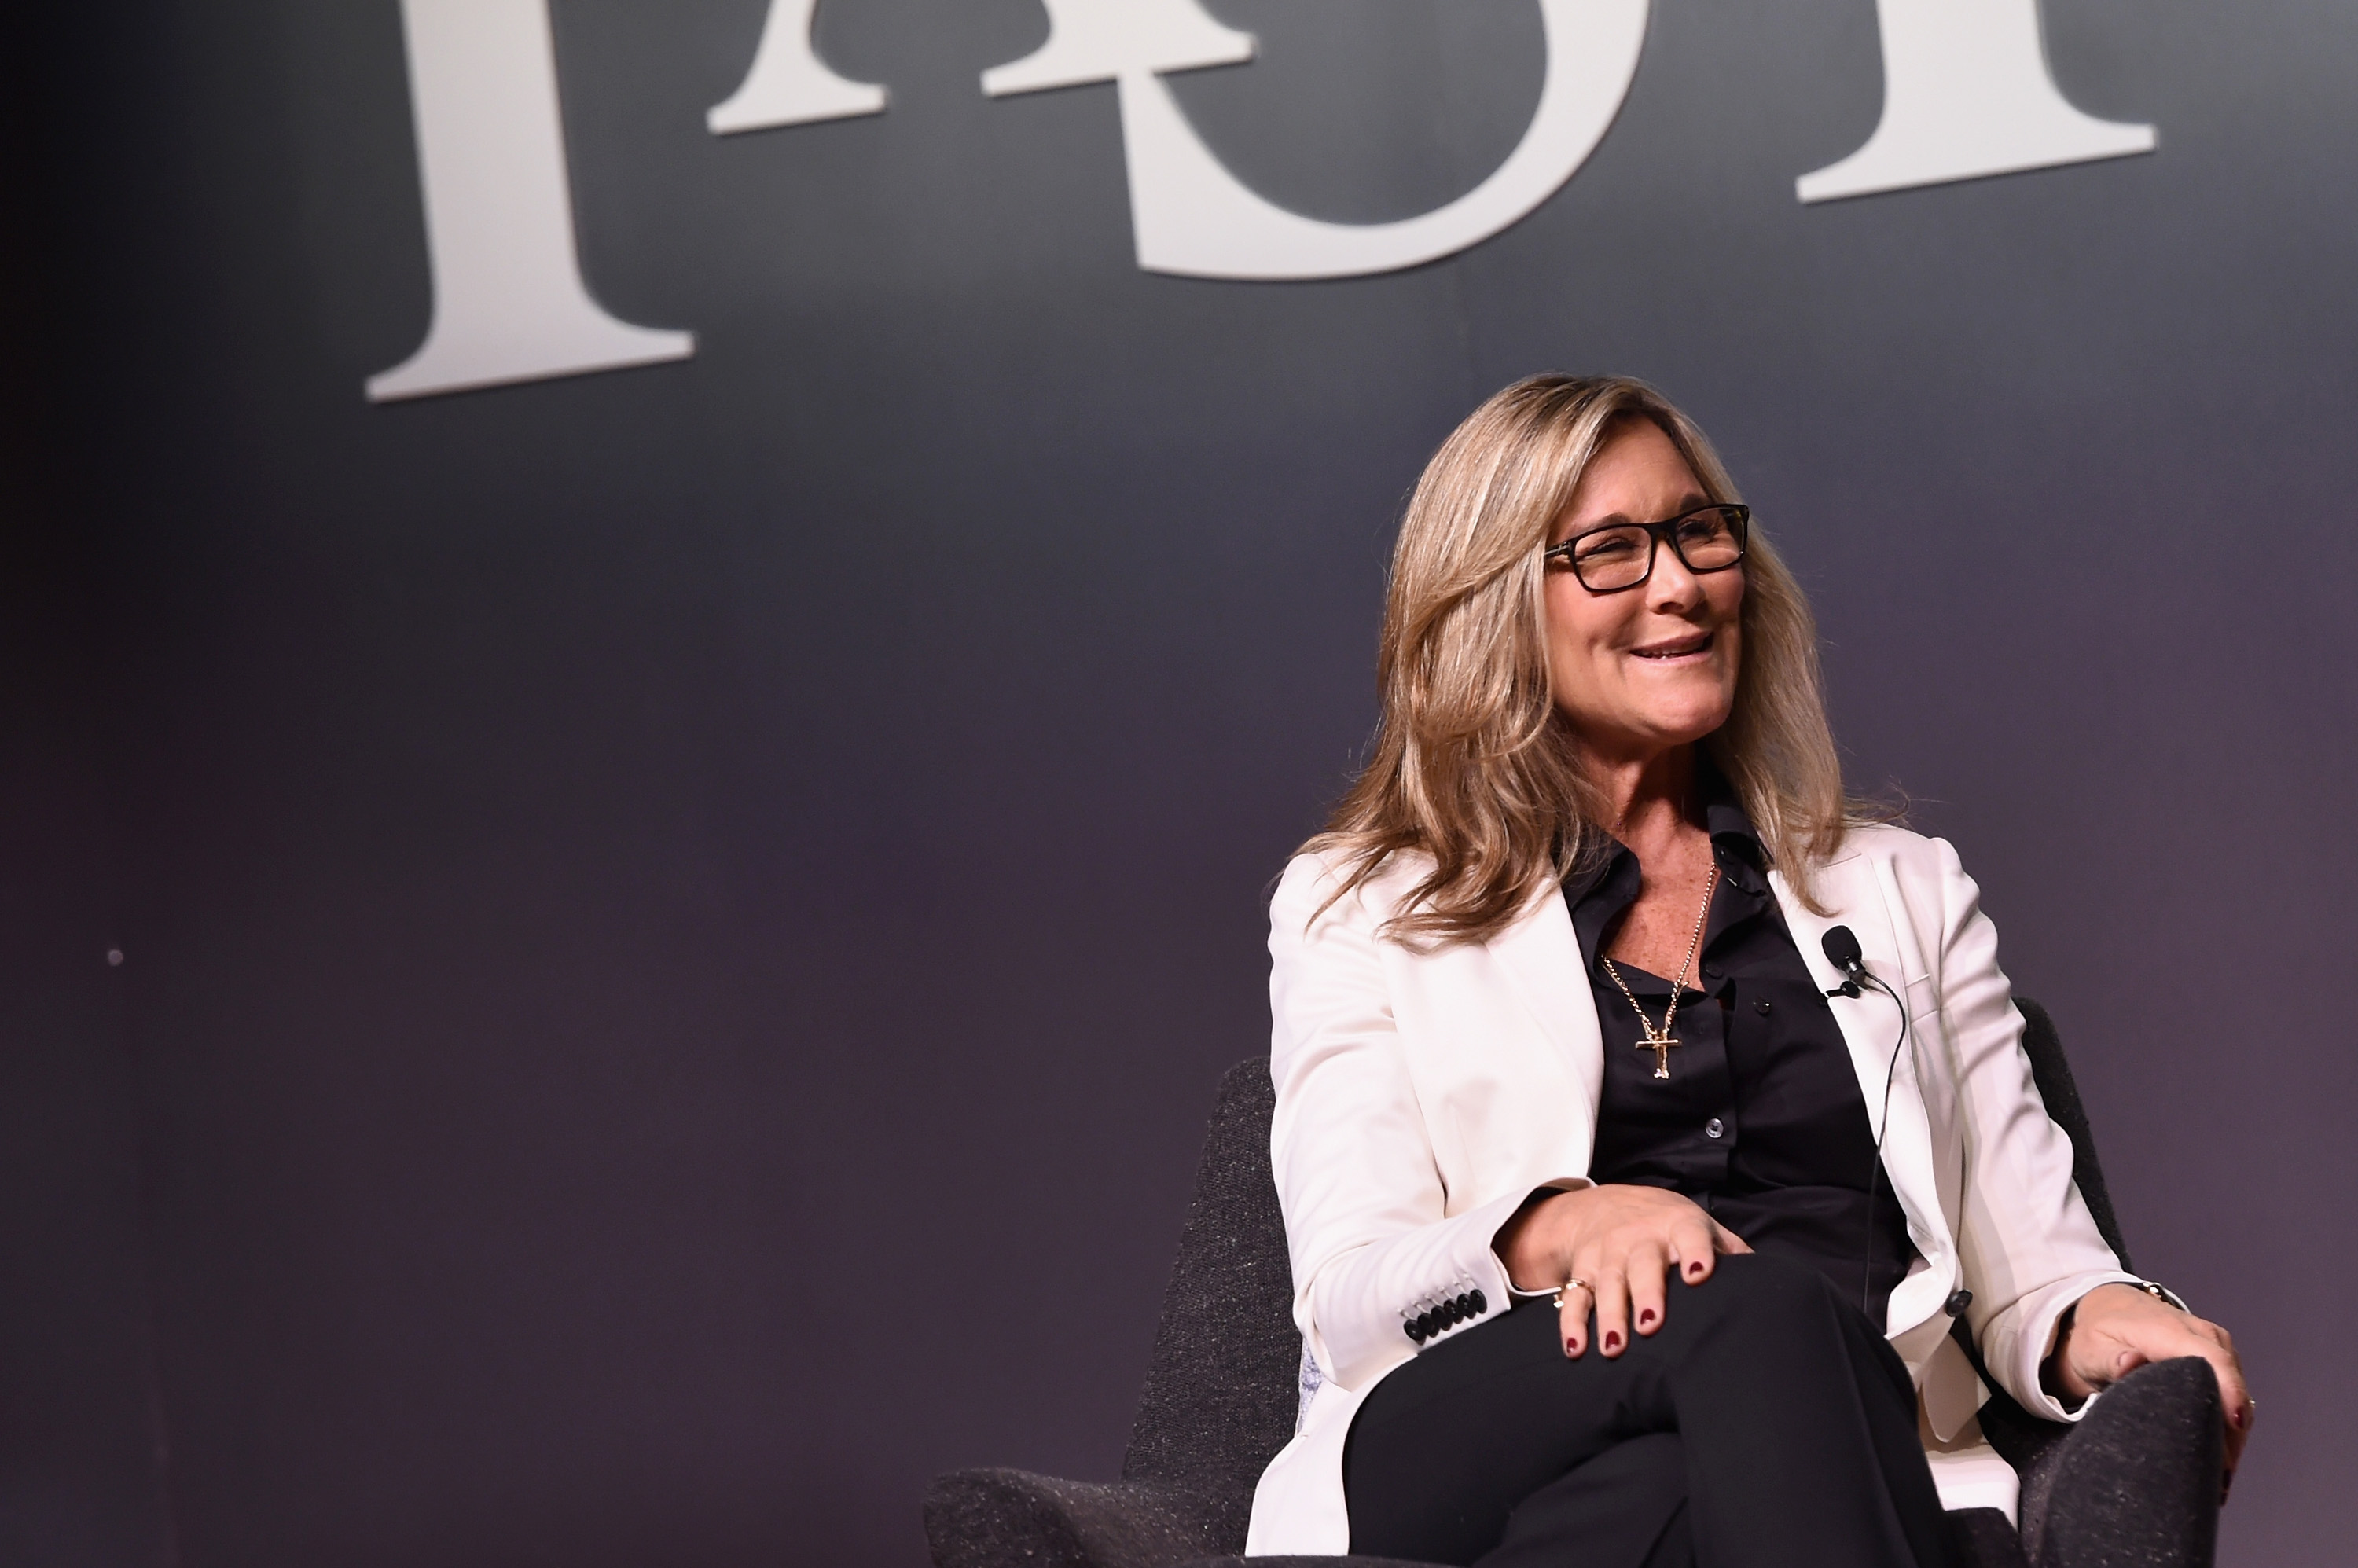 Senior Vice President of Apple Retail at Apple Inc, Angela Ahrendts speaks onstage during the Fast Company Innovation Festival in New York City on Nov. 9, 2015.